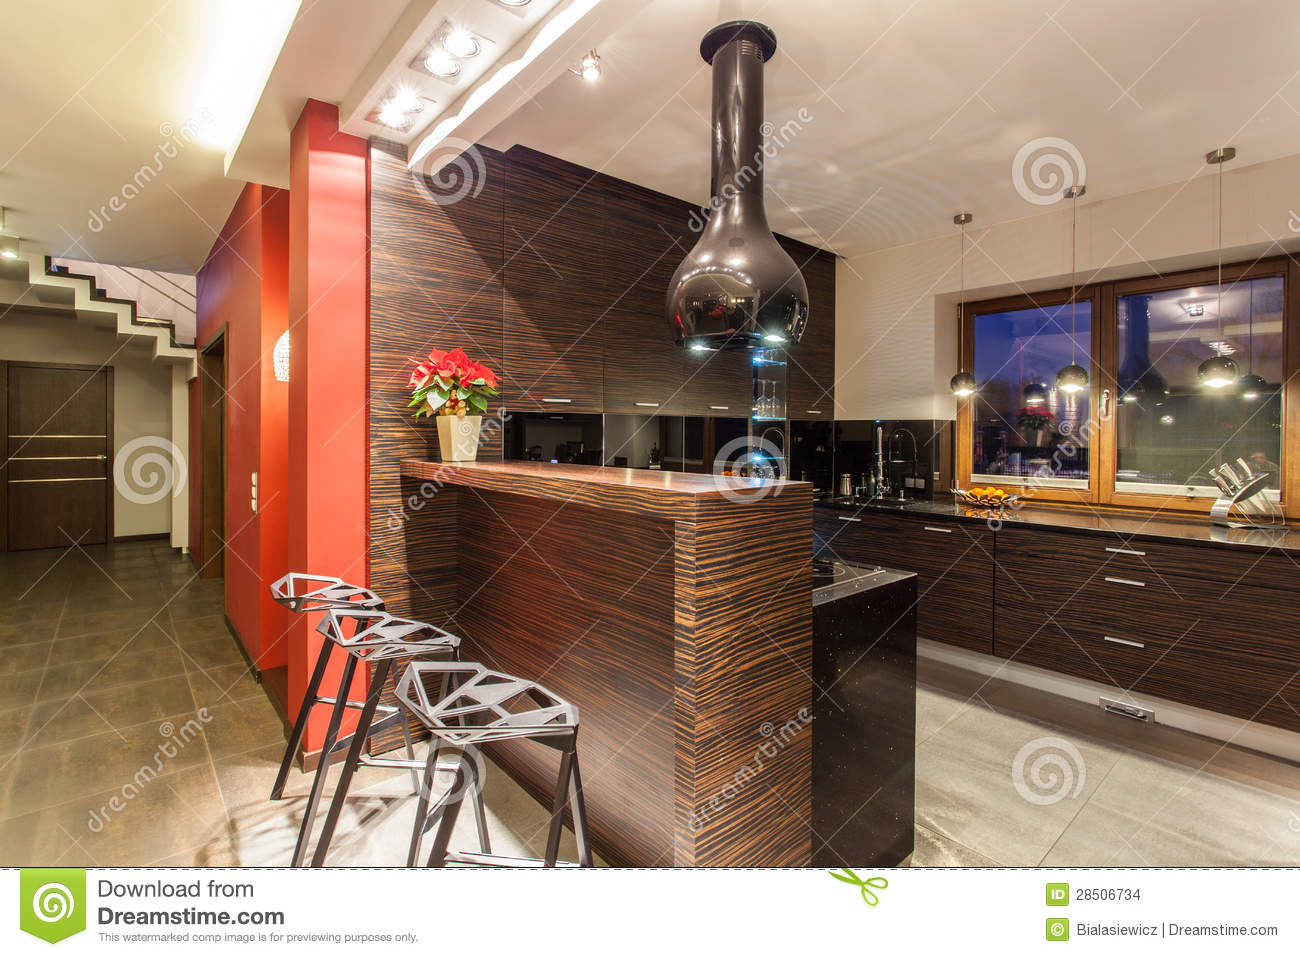 maison rouge cuisine avec le compteur de bar images stock image 28506734. Black Bedroom Furniture Sets. Home Design Ideas